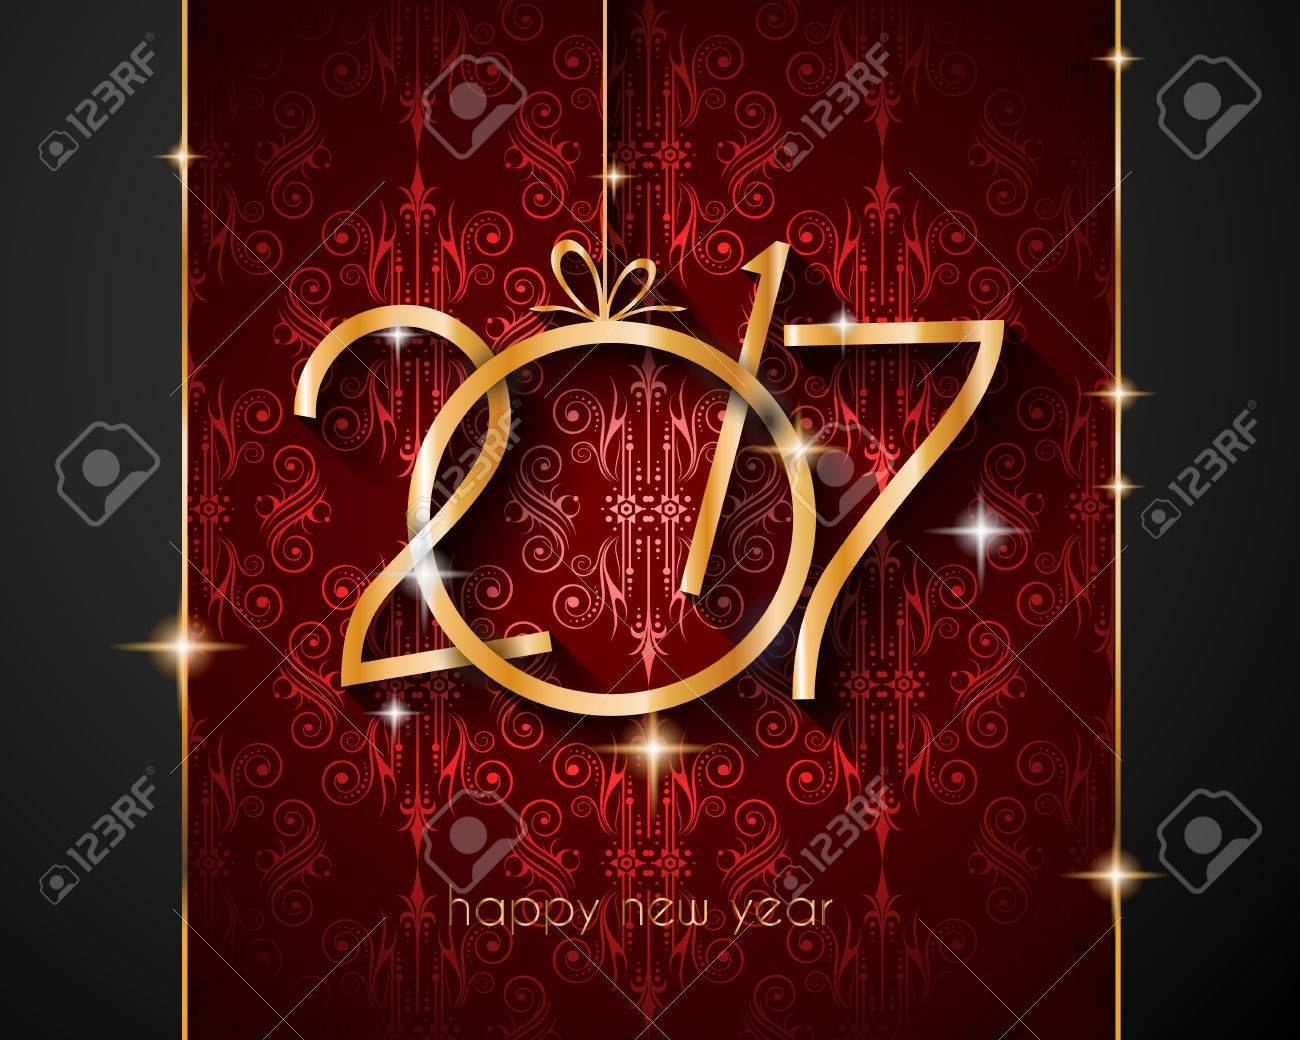 2017 happy new year background for your seasonal flyers and greetings card stock vector